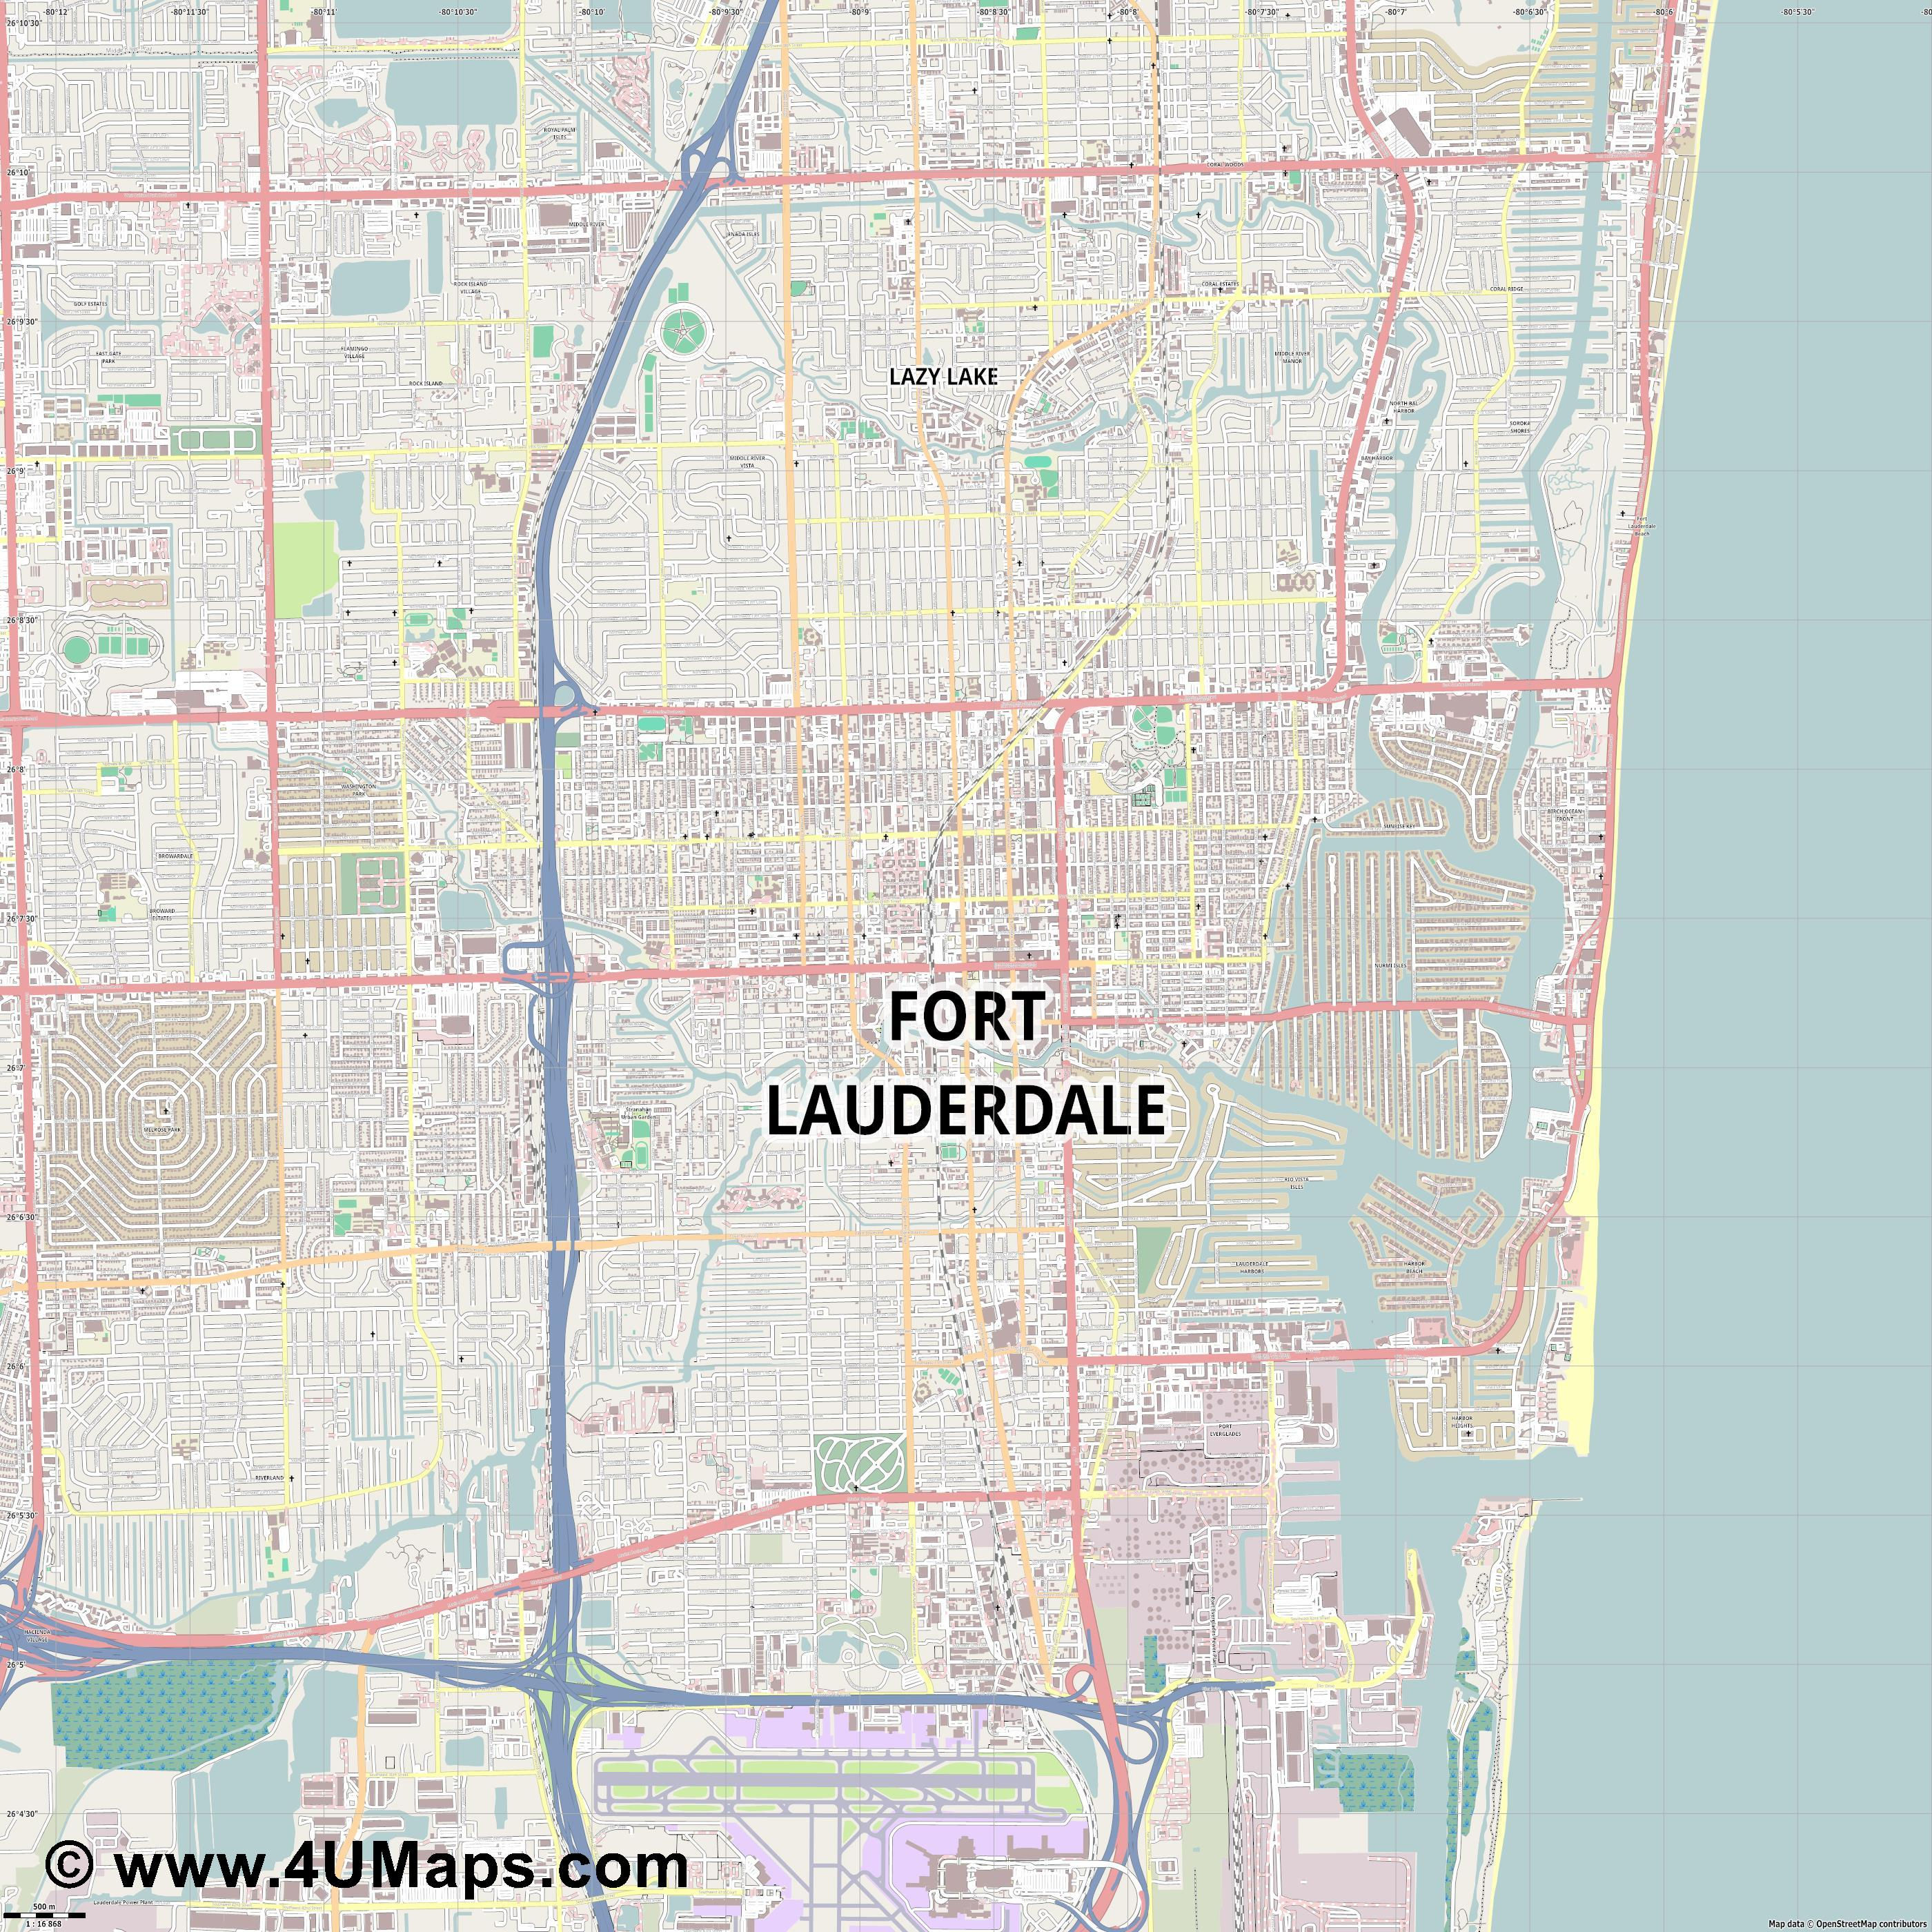 Fort Lauderdale  jpg ultra high detail preview vector city map